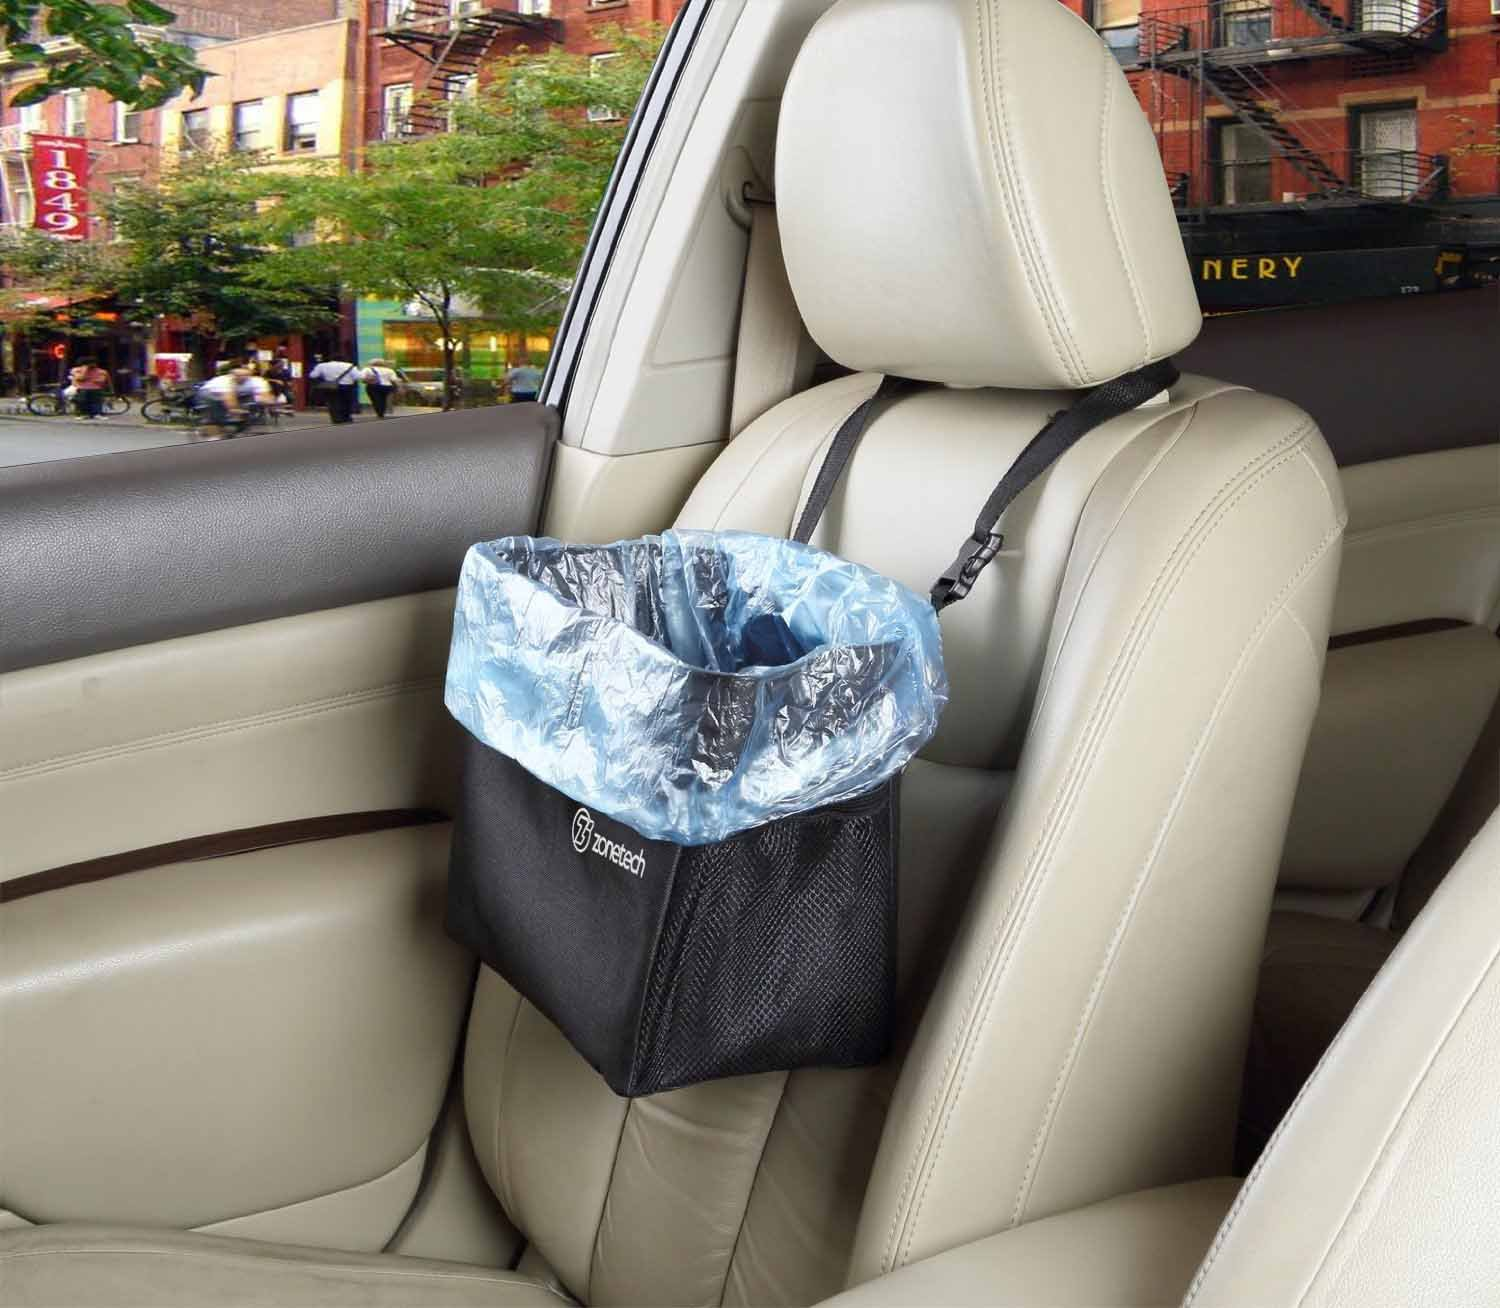 Litter Can Lining Removable Storage Kids Toys! Trash Bag Traveling Seatback Adjustable Zone Tech Waterproof Interior Headrest Car Garbage Can Litter Bag